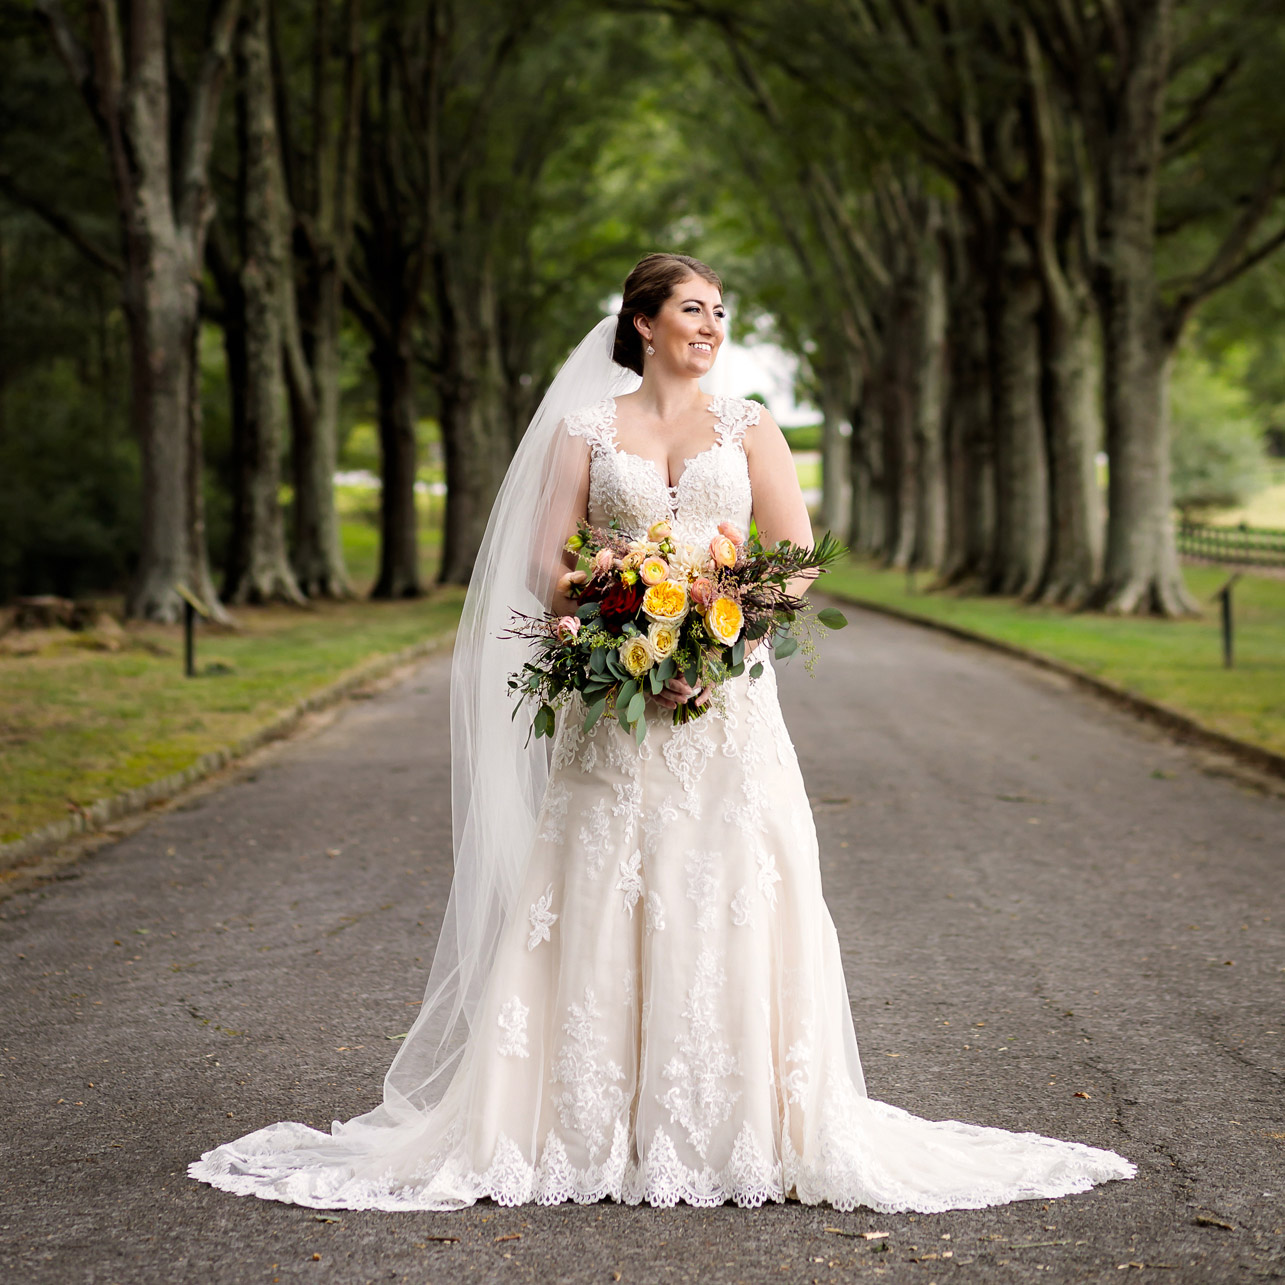 Bridal Portrat at Berry College